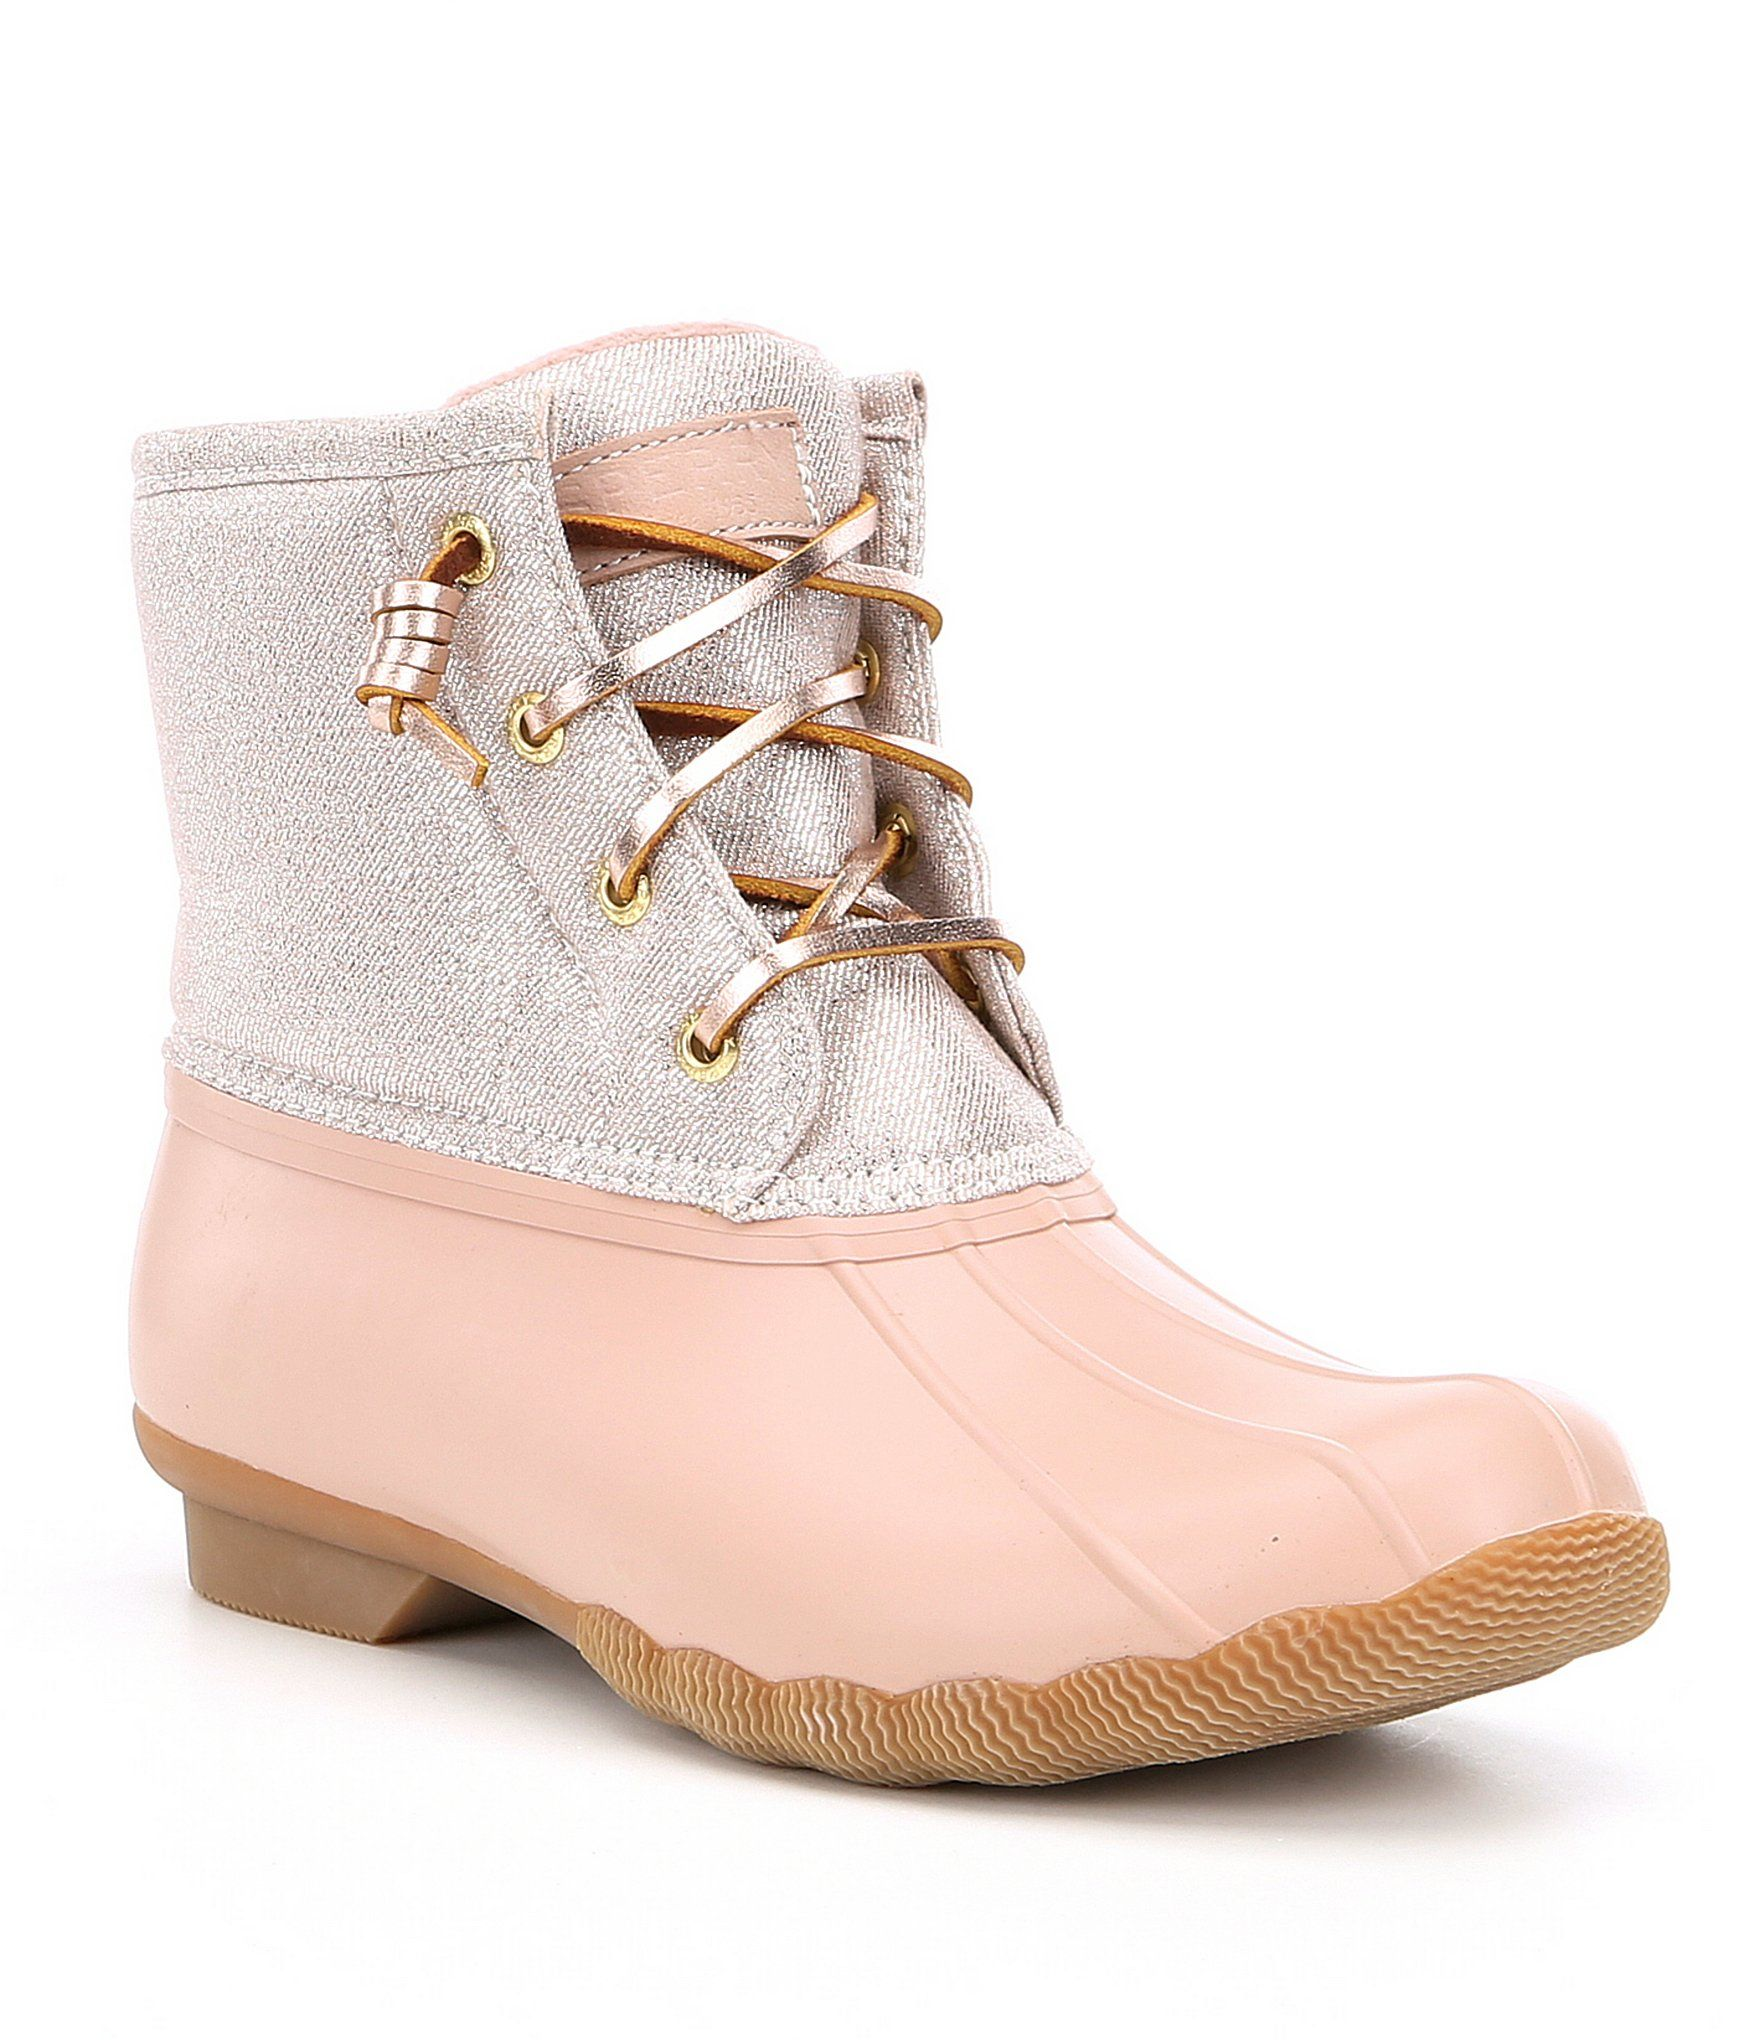 Womens rain boots, Boots, Duck boots outfit